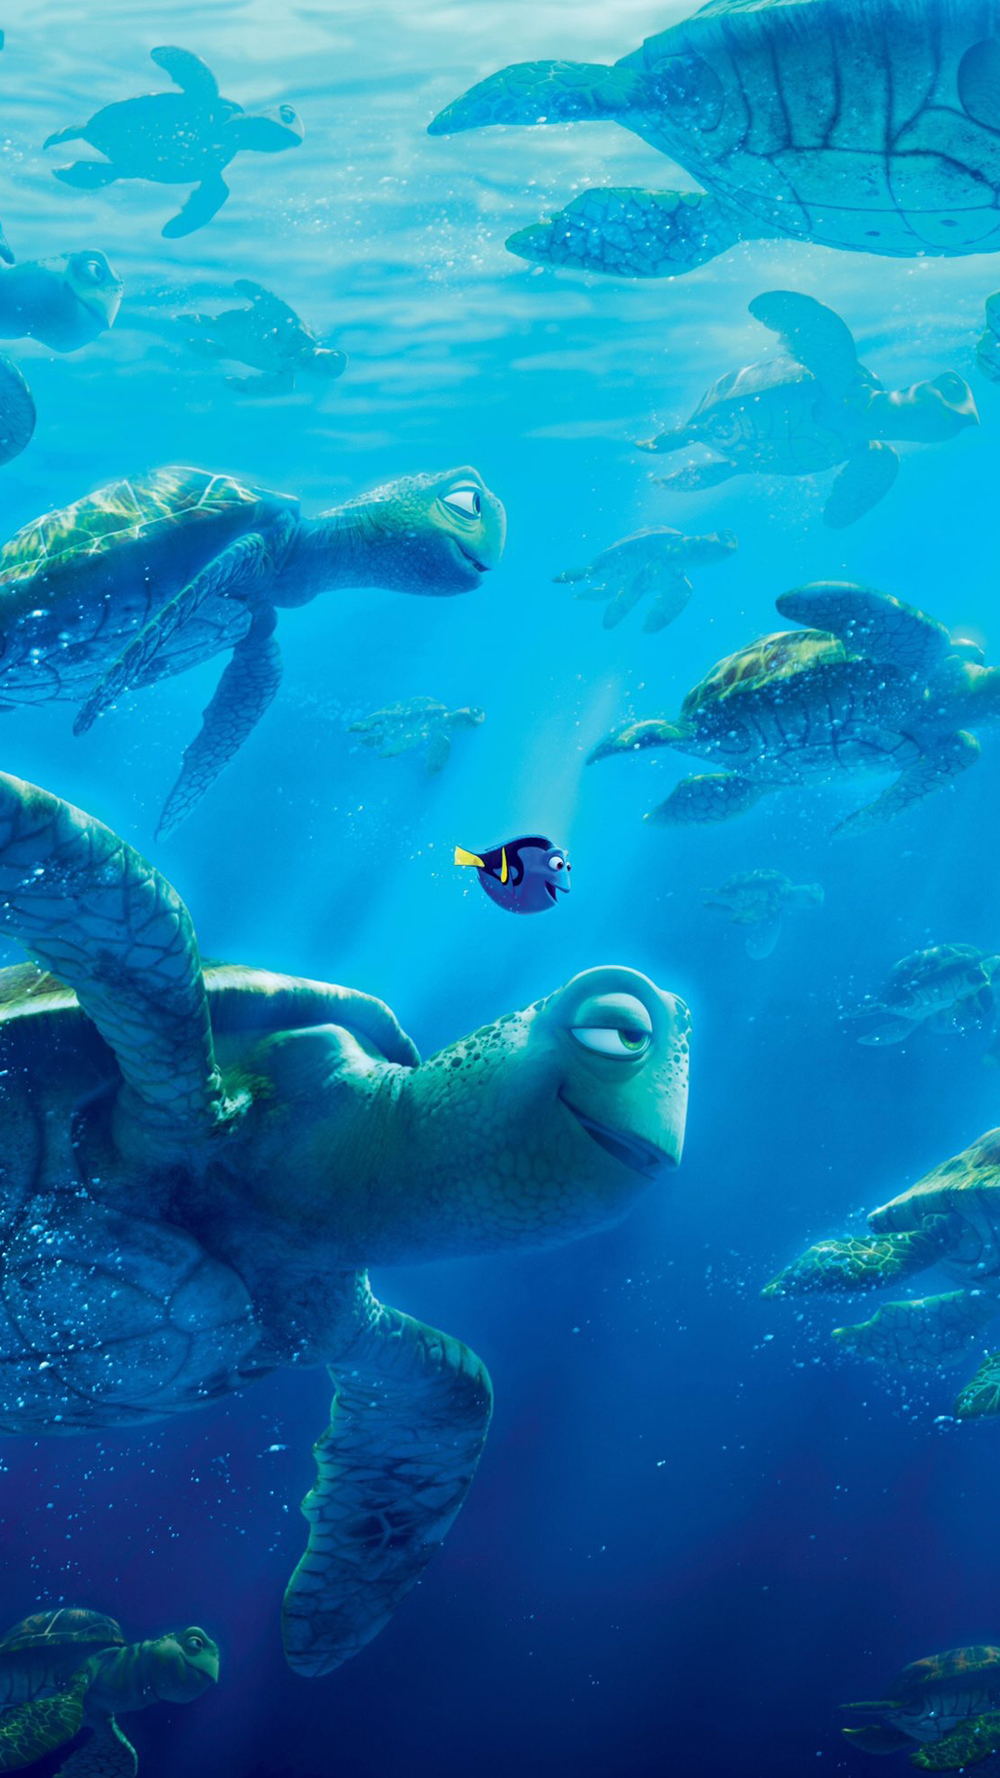 Apple-iPhone-6-6s-Plus-Wallpaper-Finding-Dory-2.jpg